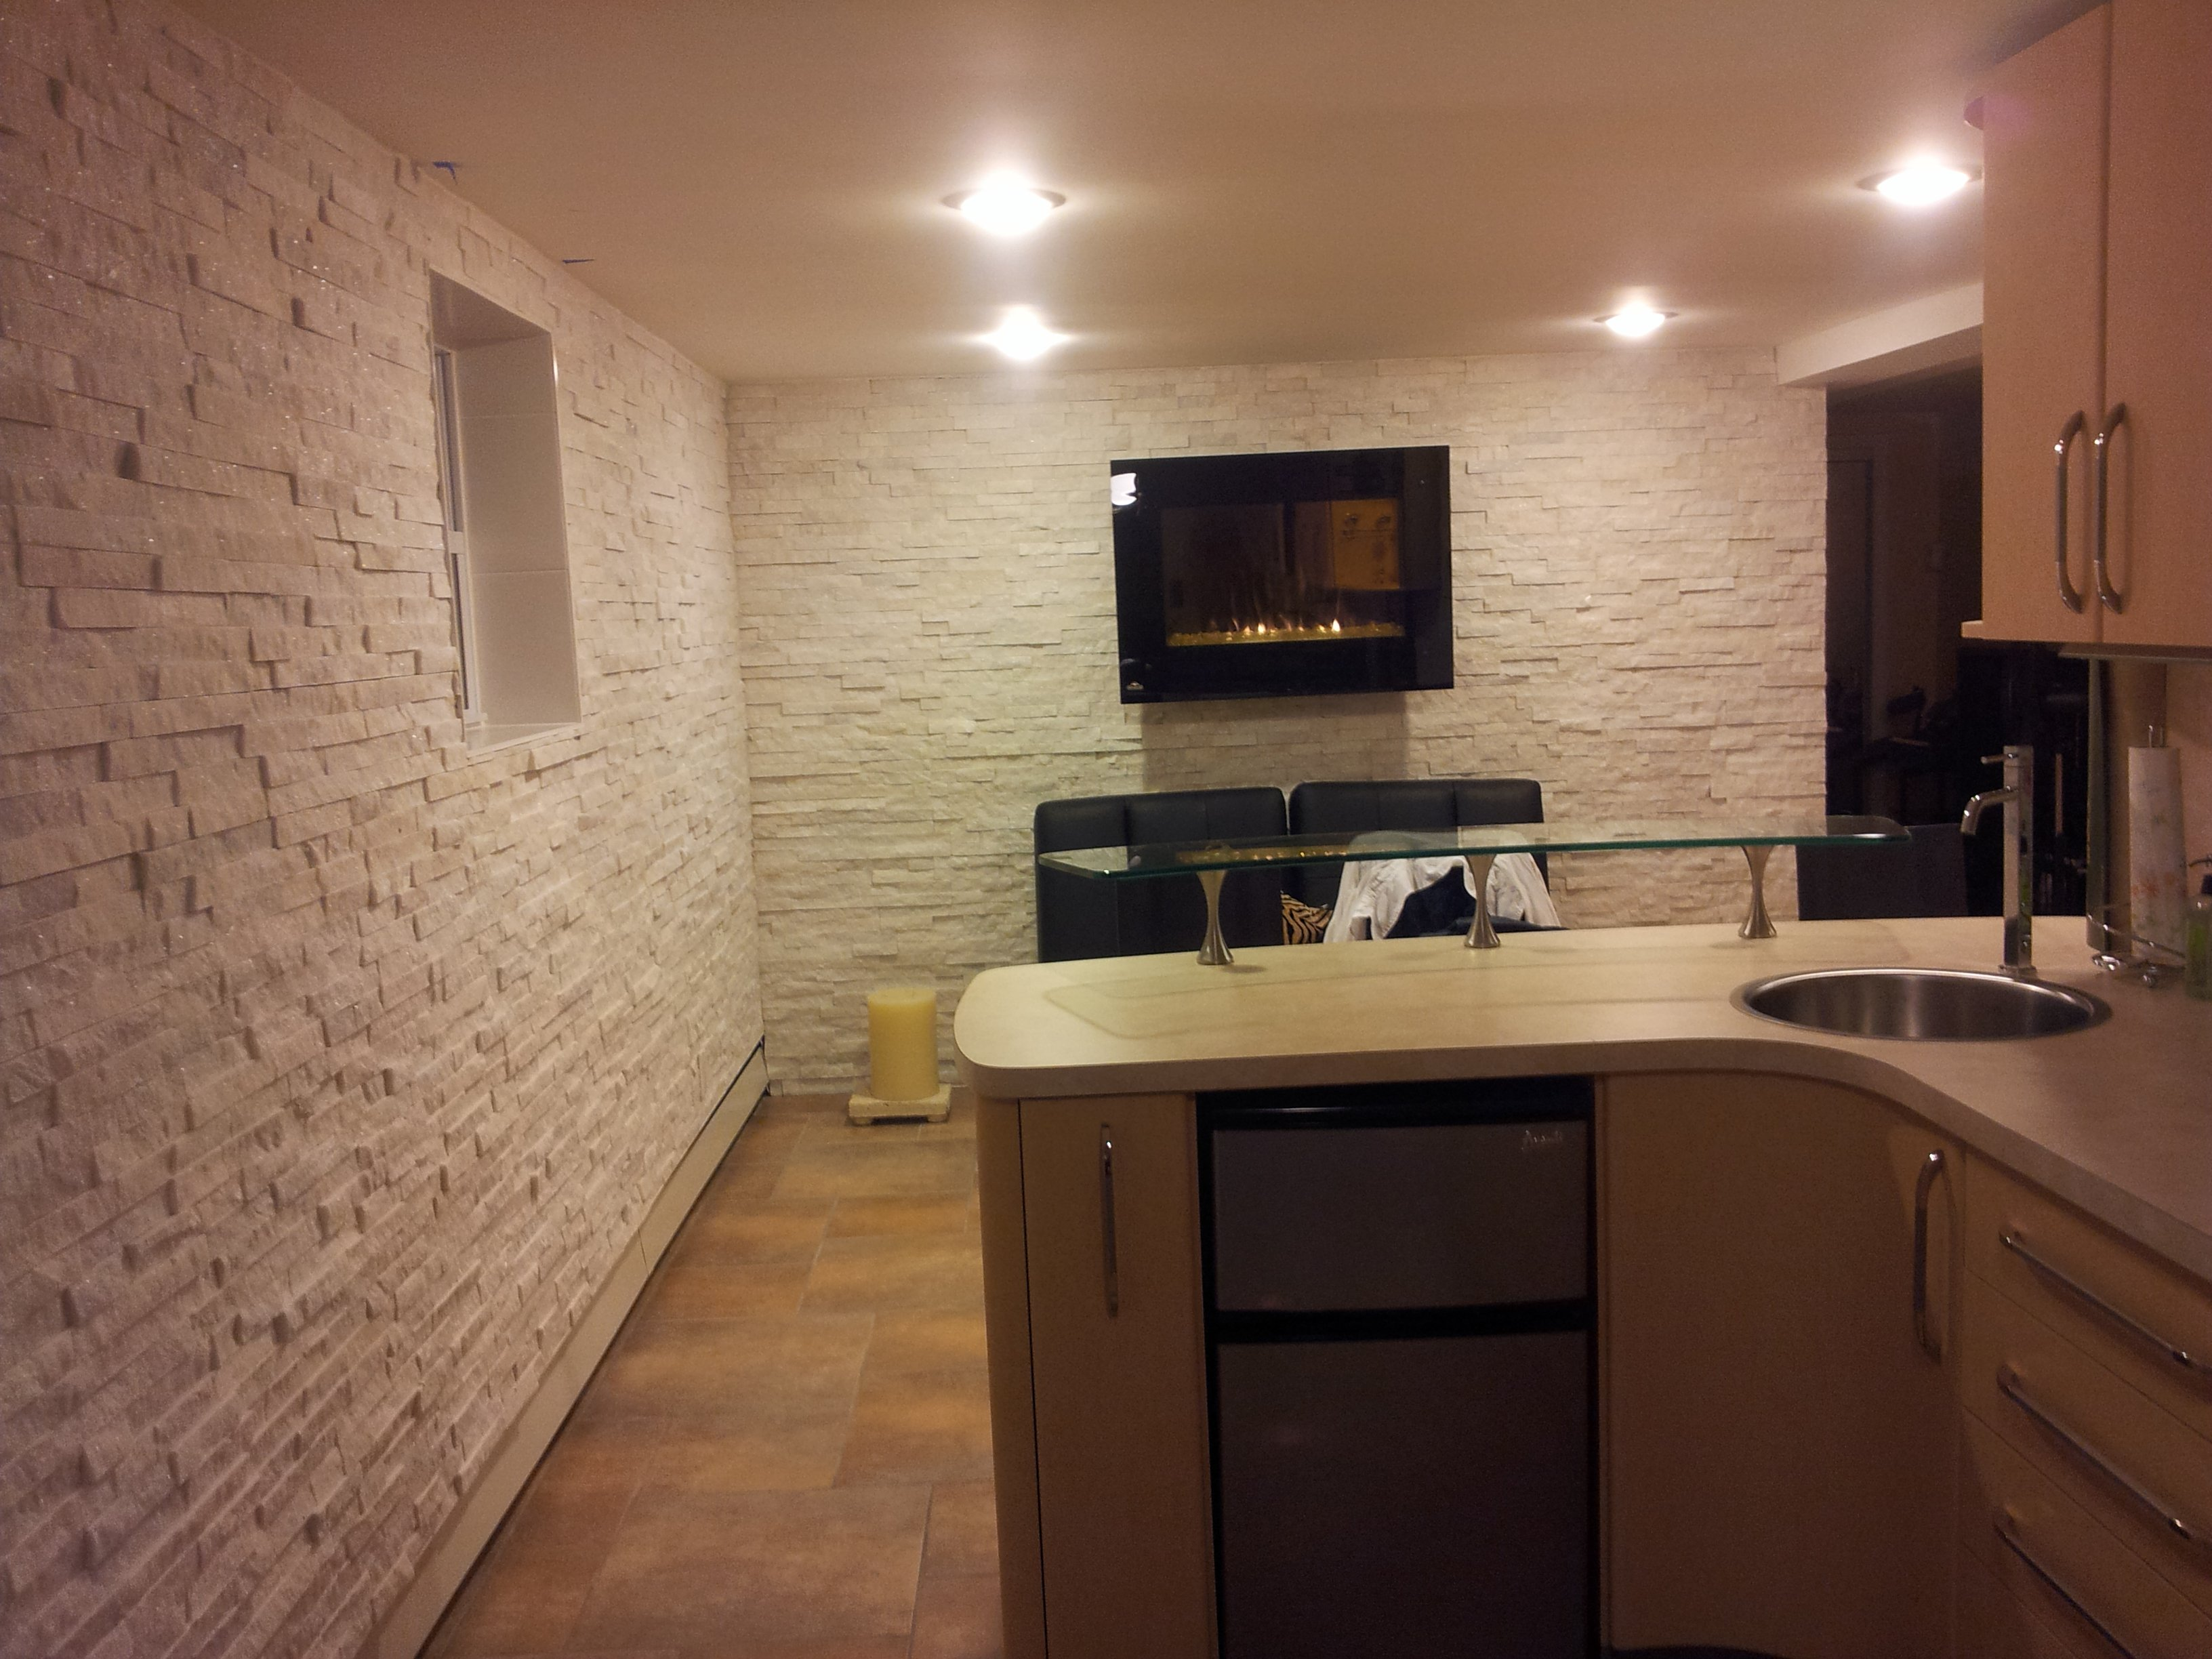 Interior Stone Wall Tile